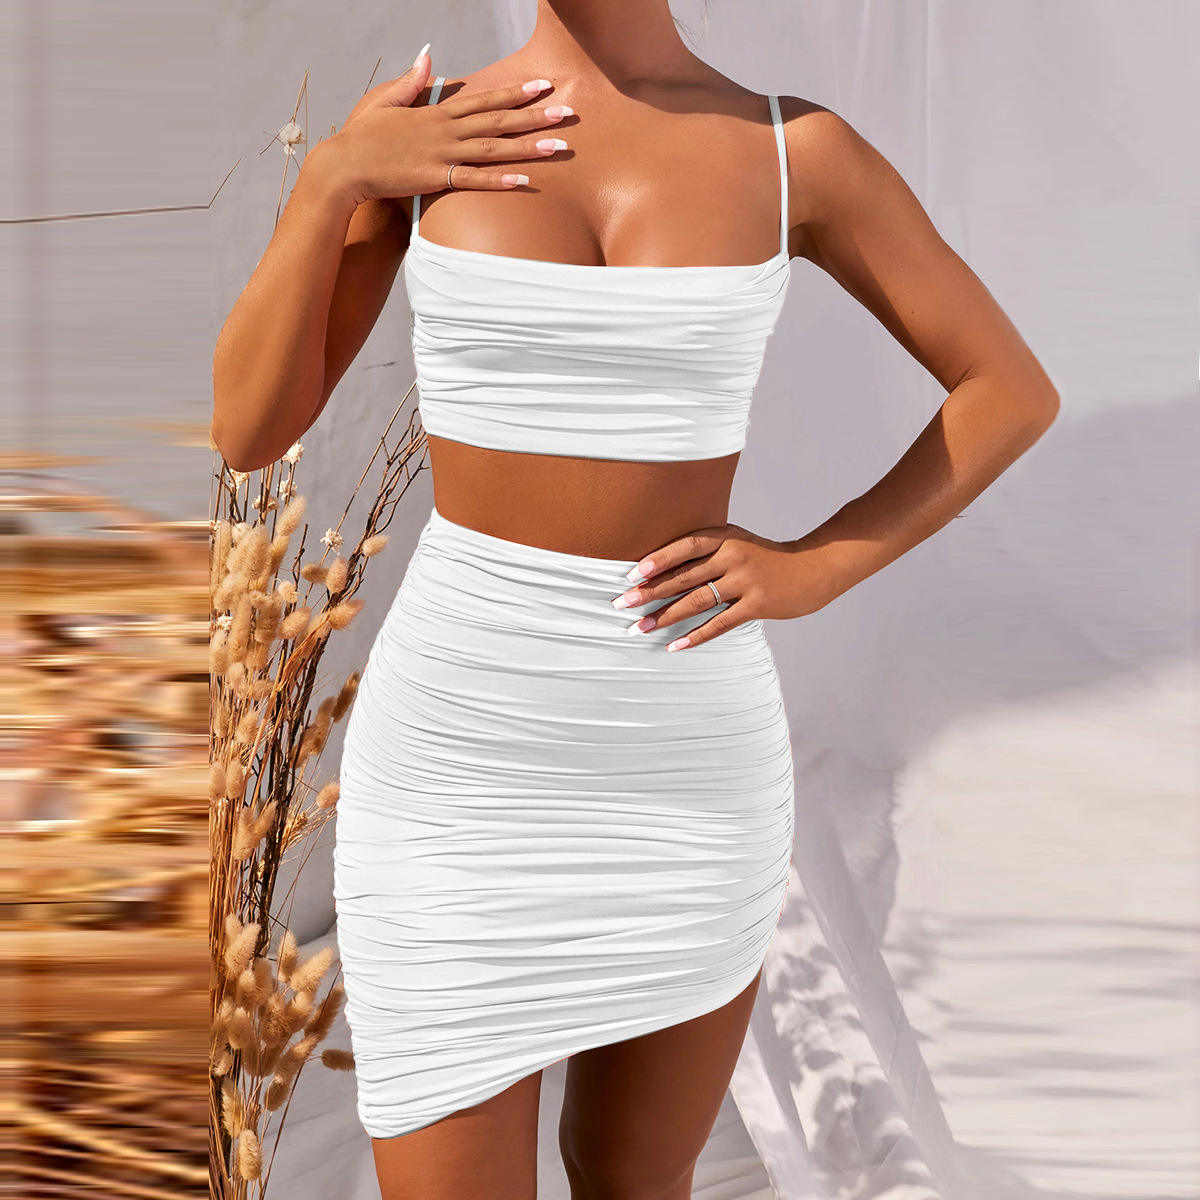 2020 new women's clothing Women's Boho Casual Party Beach dress Amazon eBay hot selling sexy dress Women Pleated two-piece dress